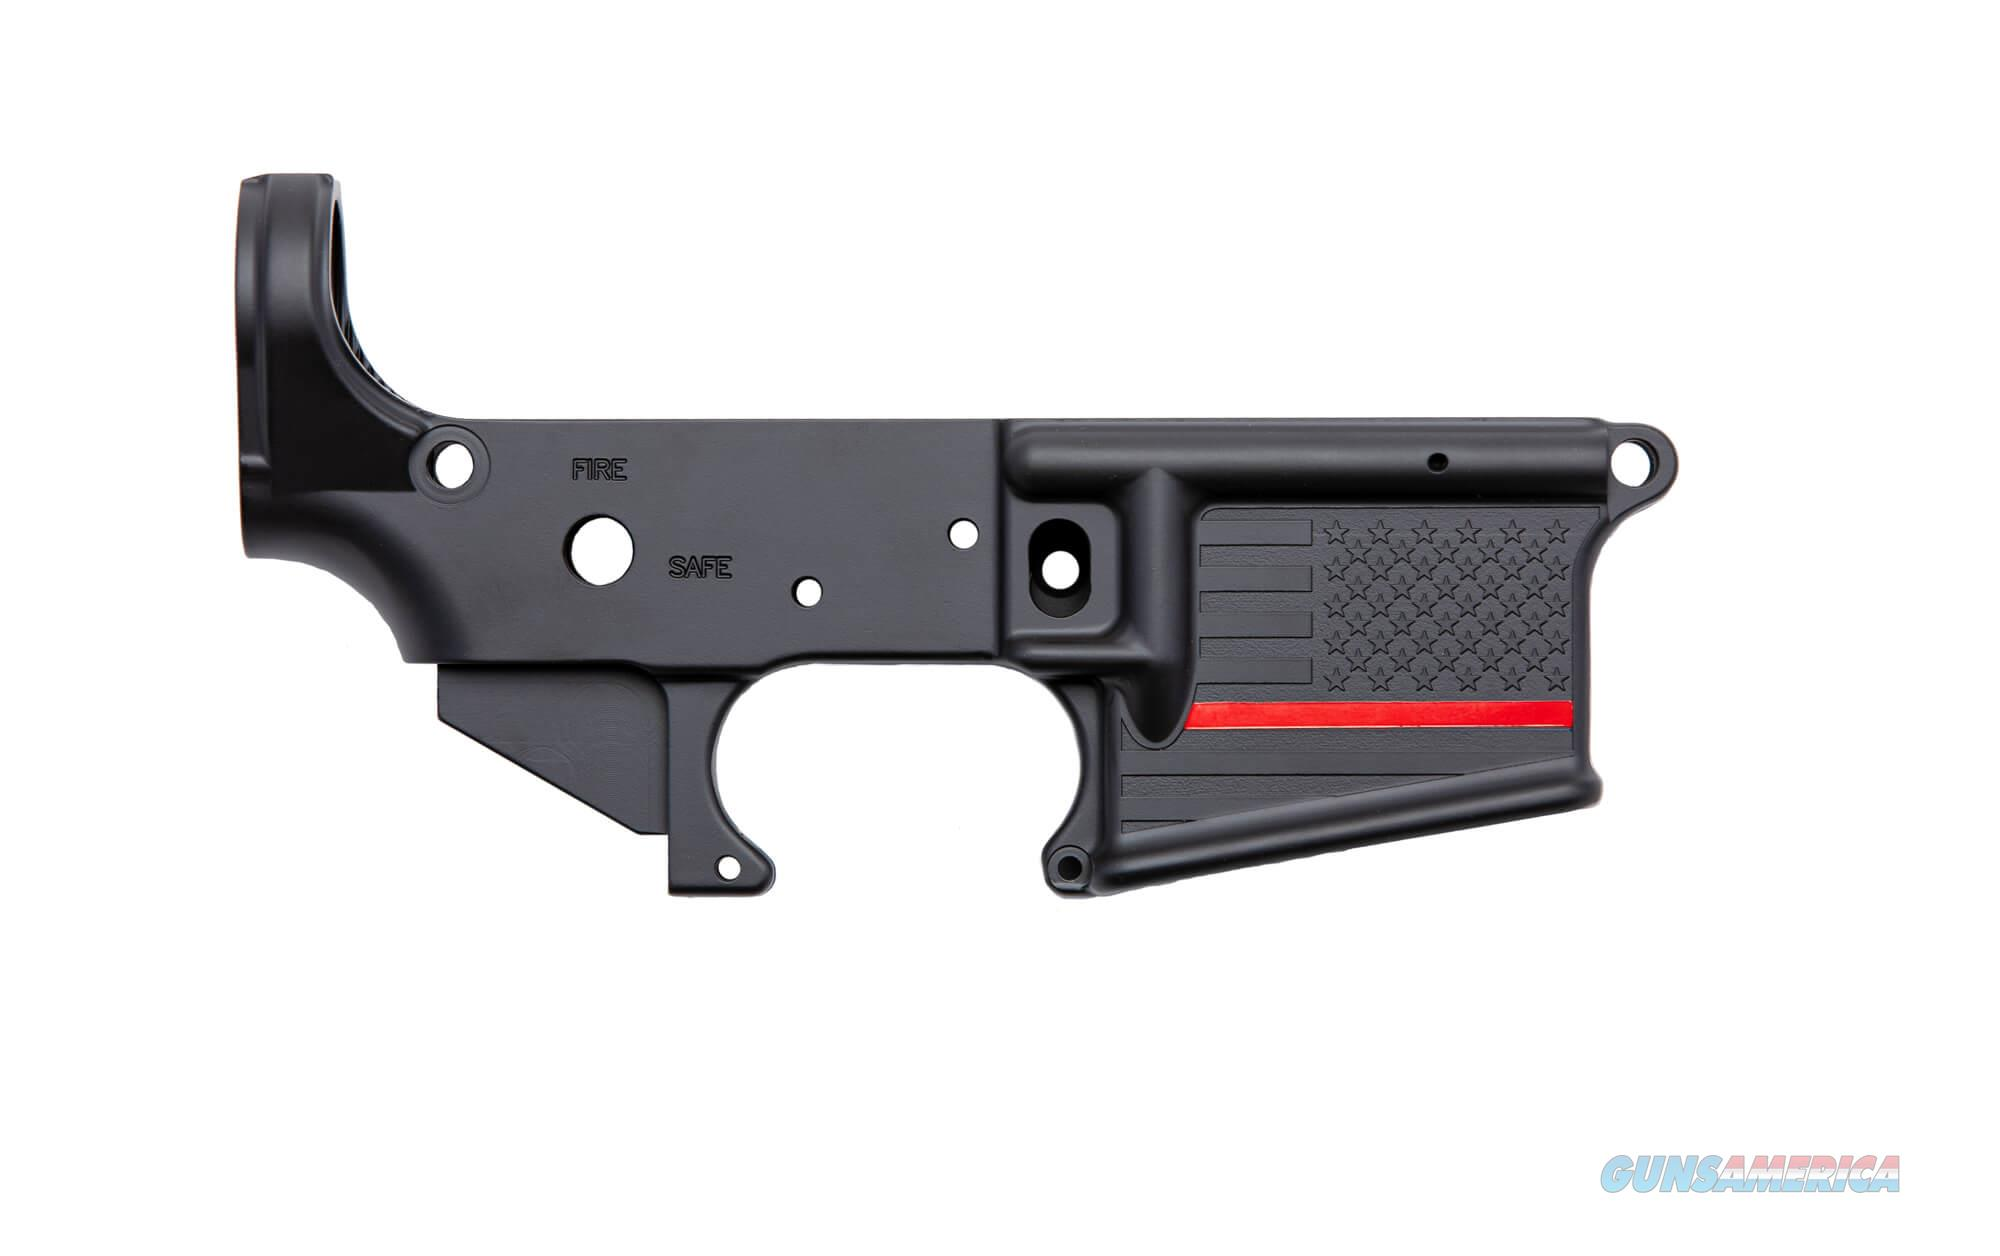 Spike's Tactical Thin Red Line Lower Receiver  Guns > Pistols > Spikes Tactical Pistols